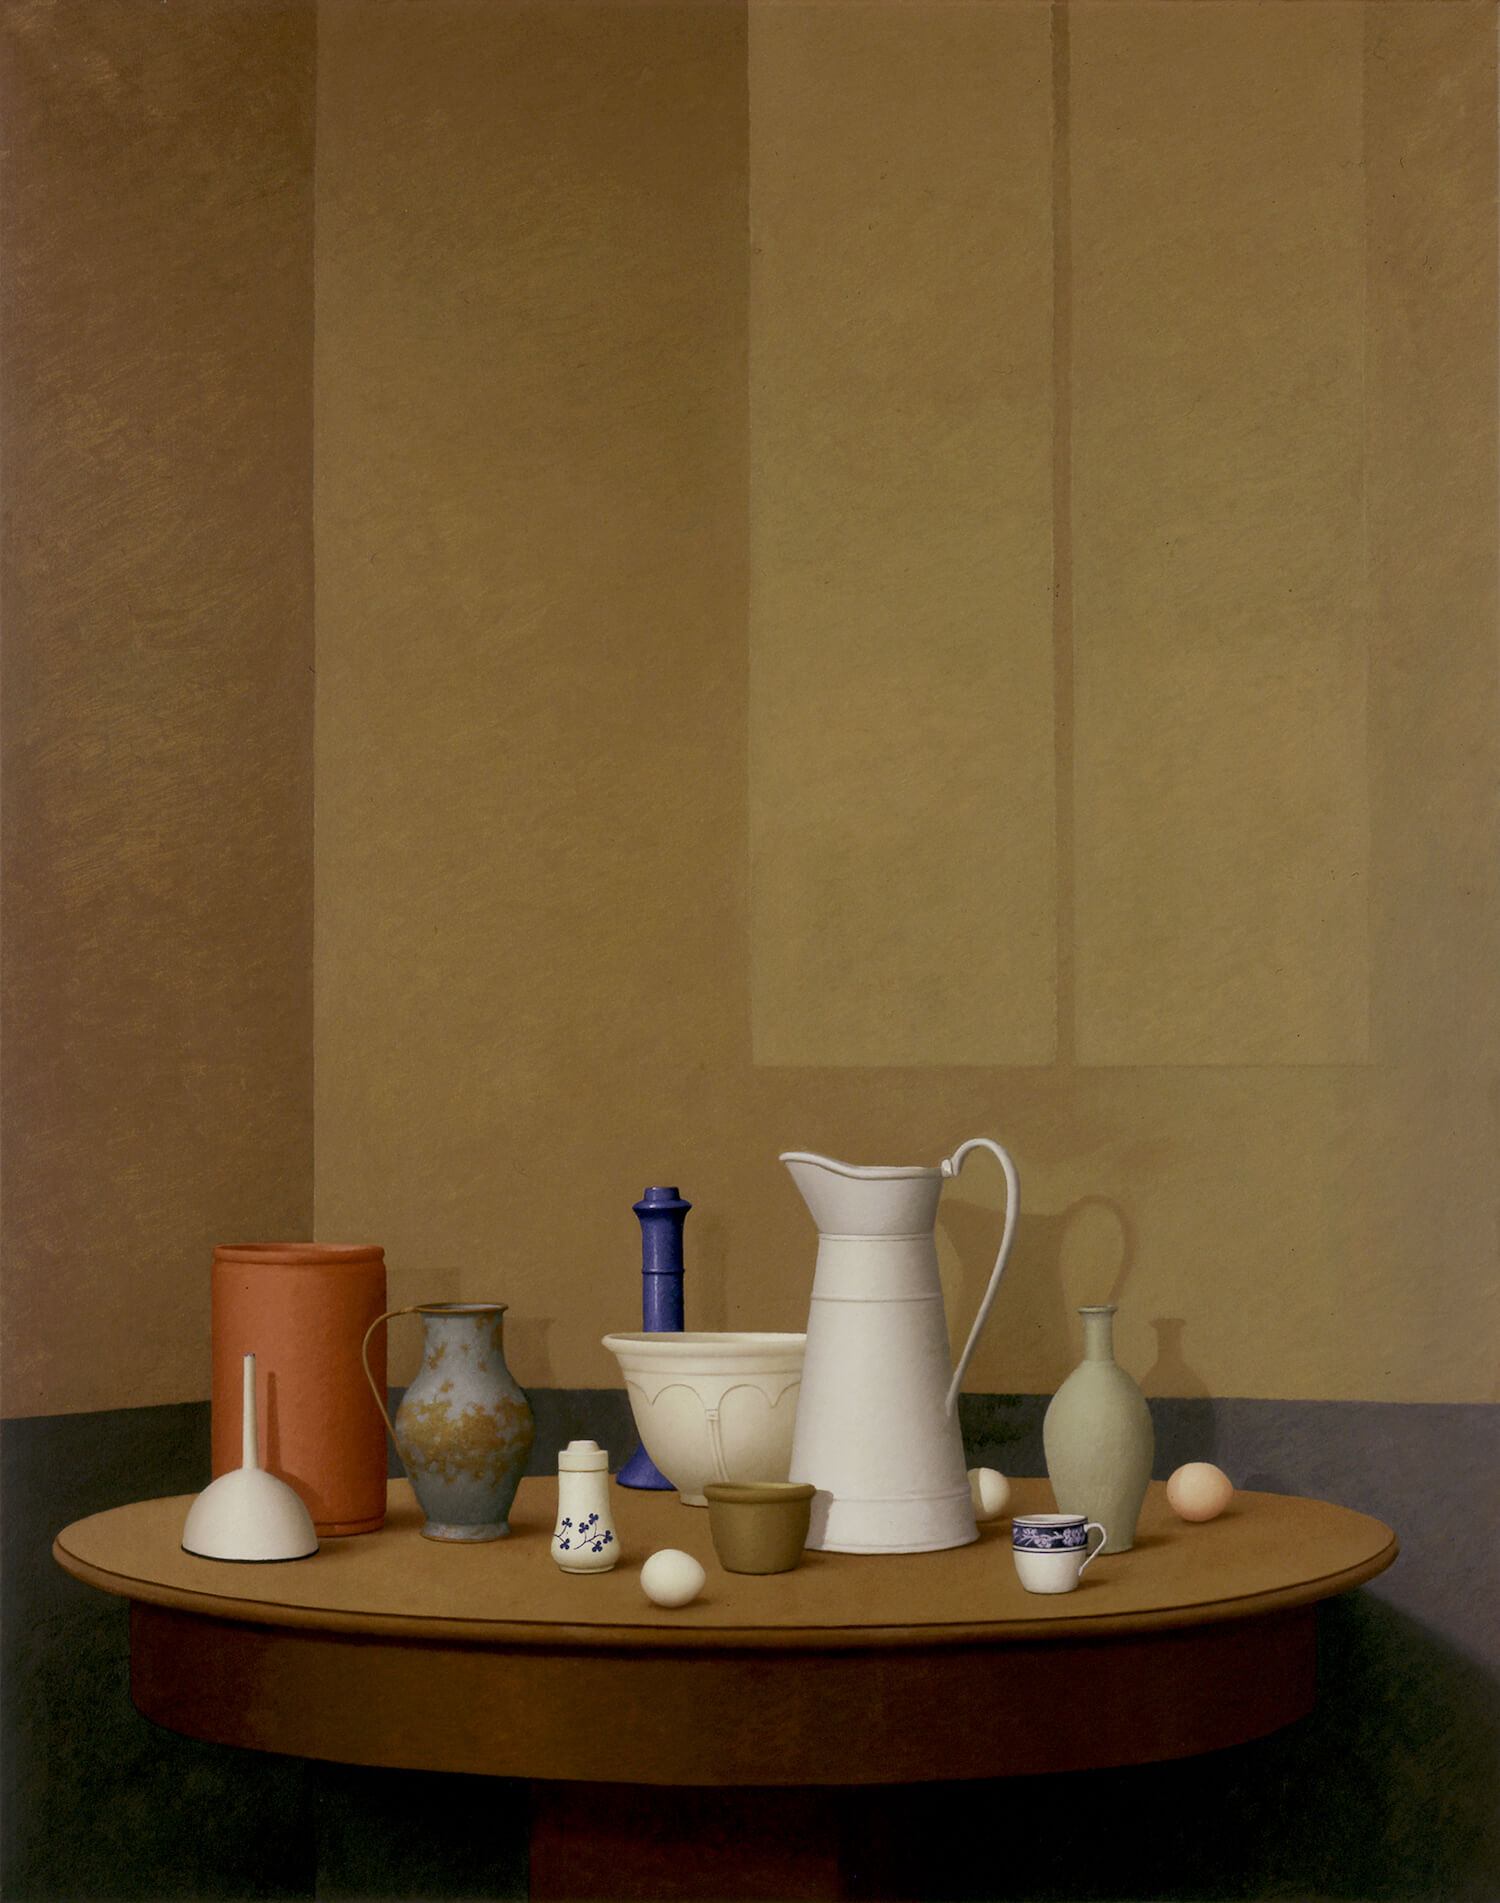 William Bailey, Turning, 2003, oil on linen, 70 x 55 inches (courtesy of the artist and Betty Cuningham Gallery)